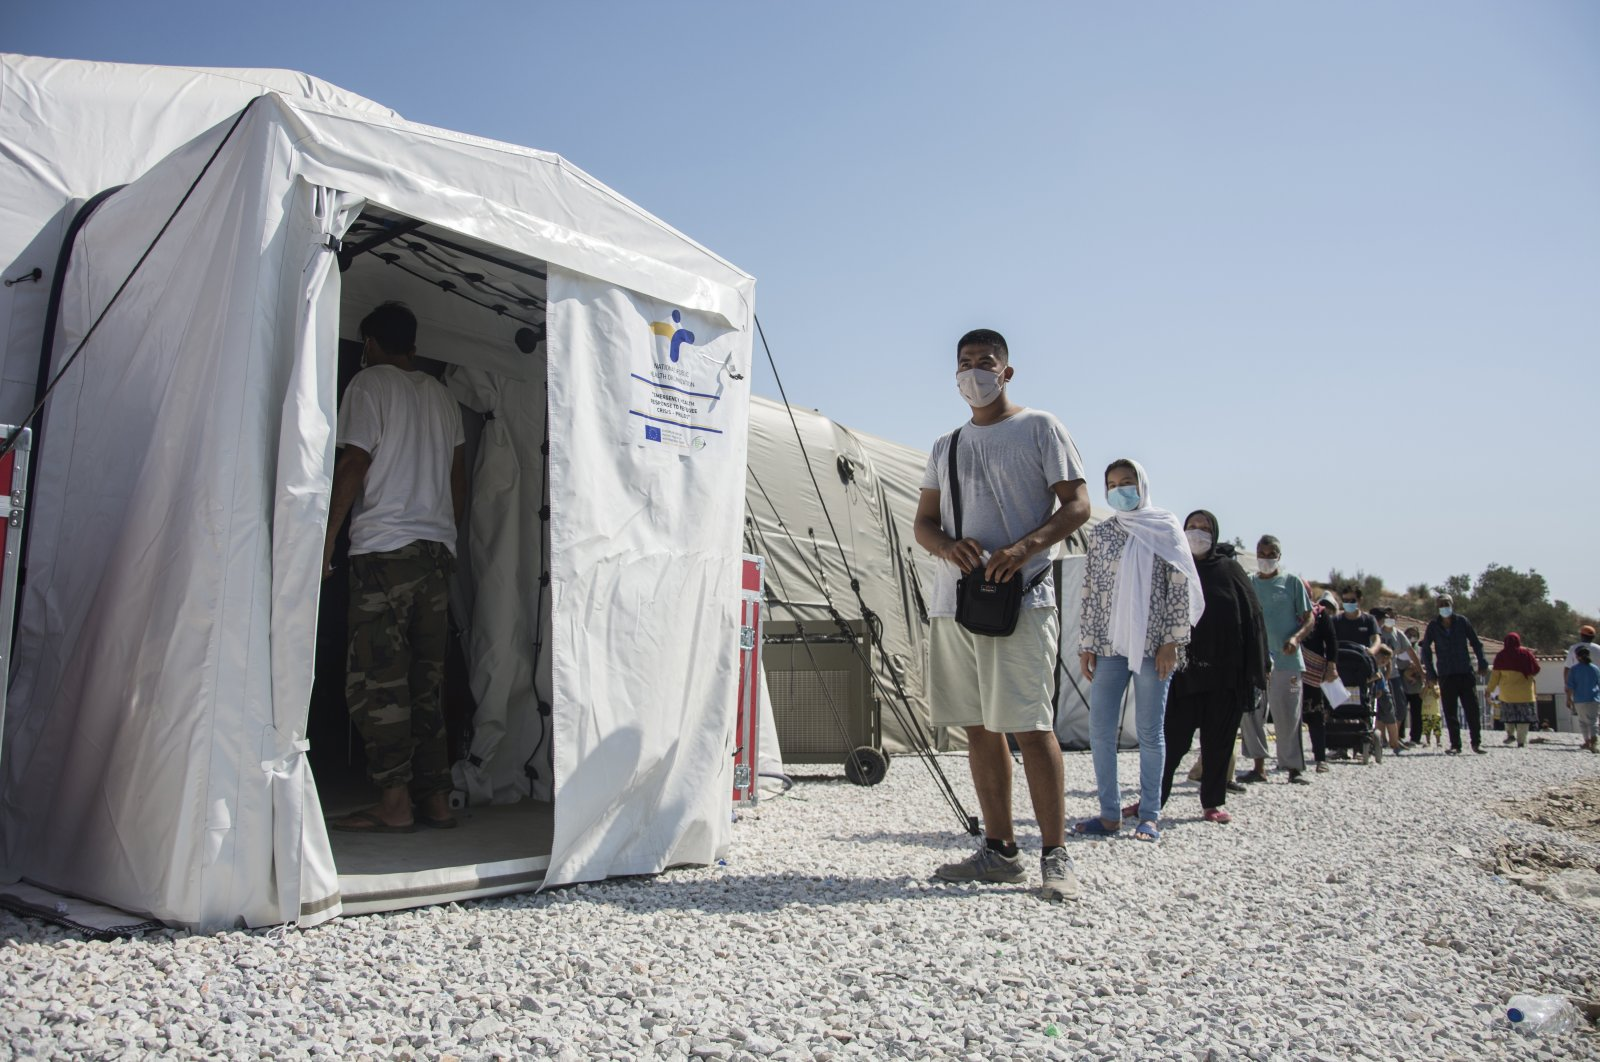 Migrants wait in a queue to do tests for the new coronavirus in Moria refugee camp on the northeastern Aegean island of Lesbos, Greece, Sept. 4, 2020. (AP Photo)